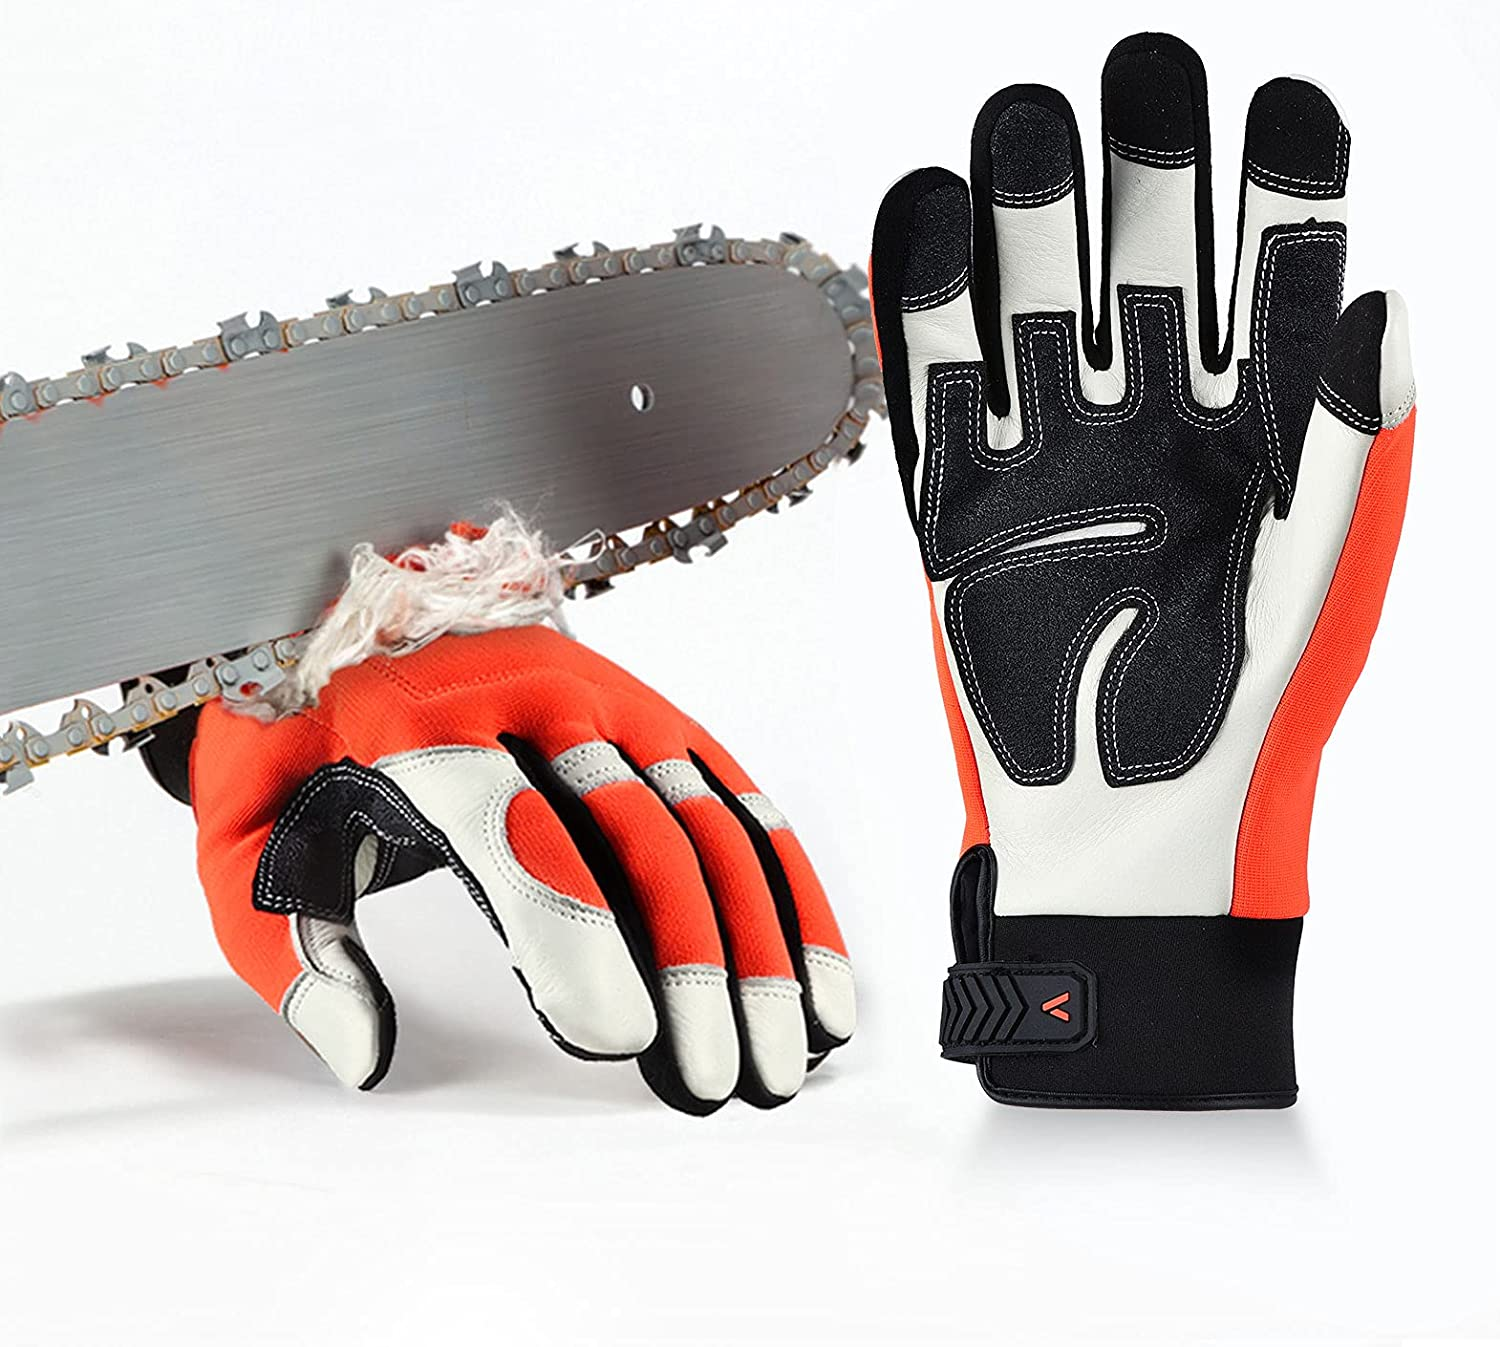 Vgo Chainsaw 12-Layer Saw Protection Outlet sale feature Cow 2021 new Leather Orange Gloves